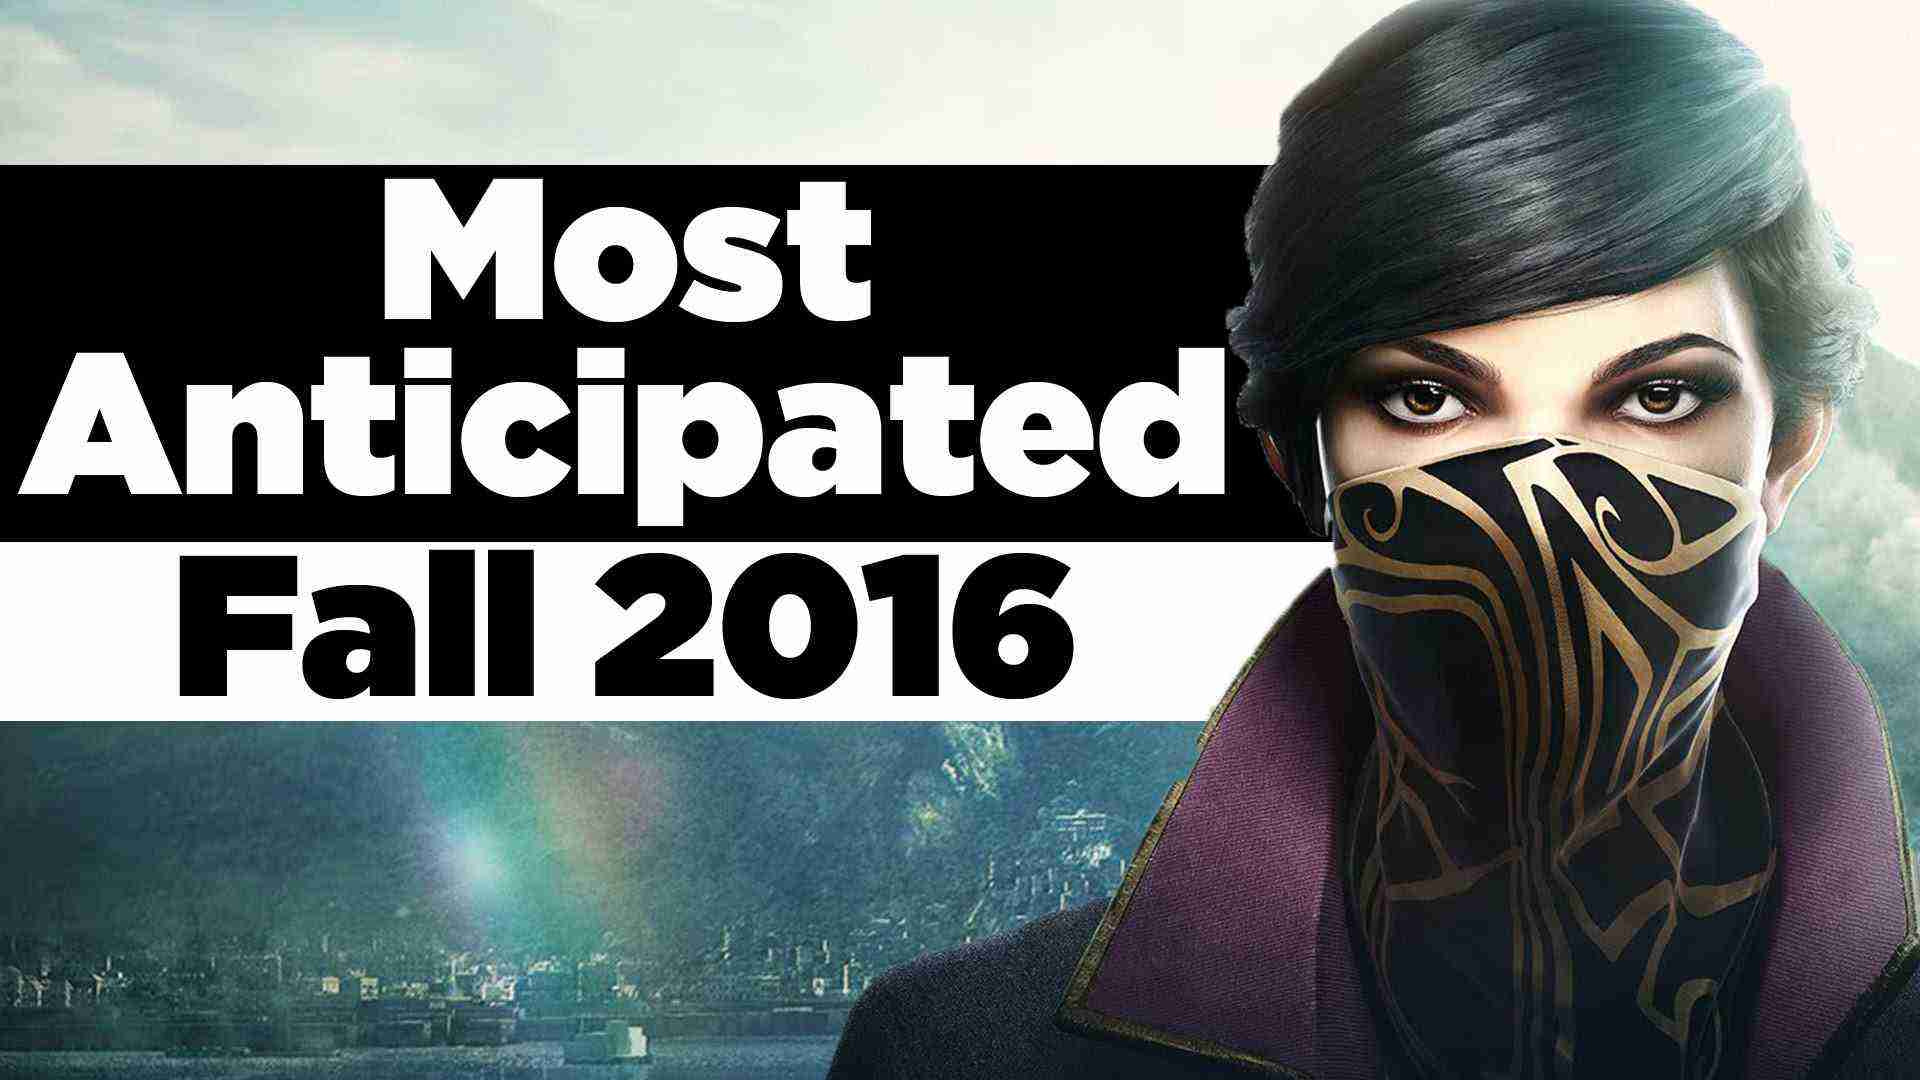 Most Anticipated Games of Fall 2016 – Inside Gaming Daily